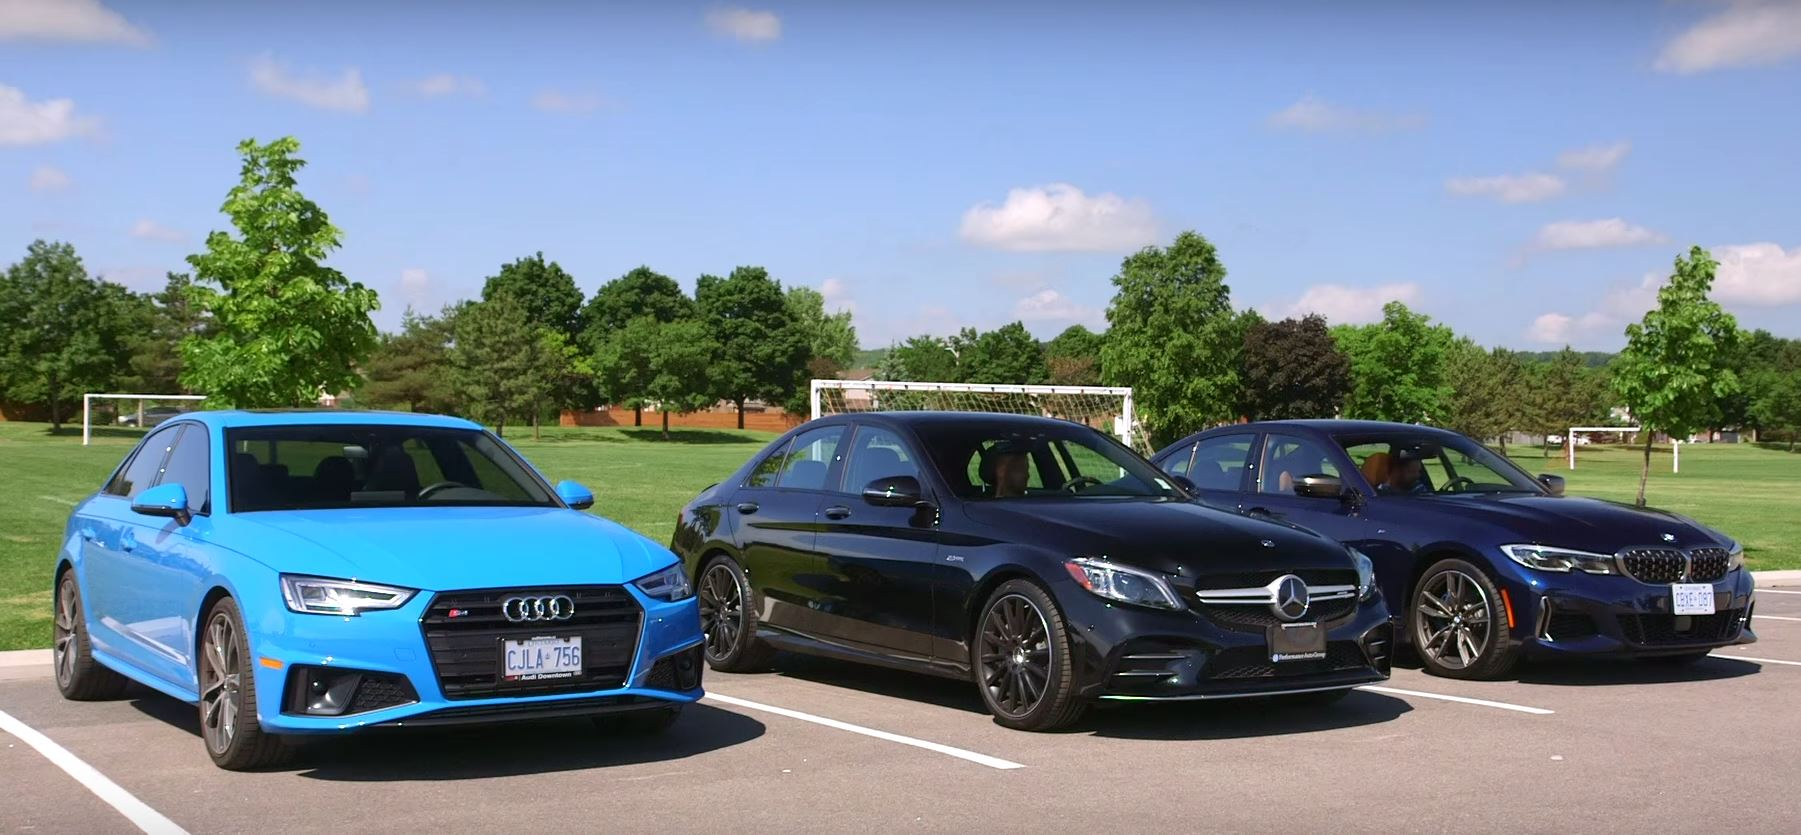 2020 Bmw M340i Takes On Audi S4 And Mercedes C43 Amg In Comparison